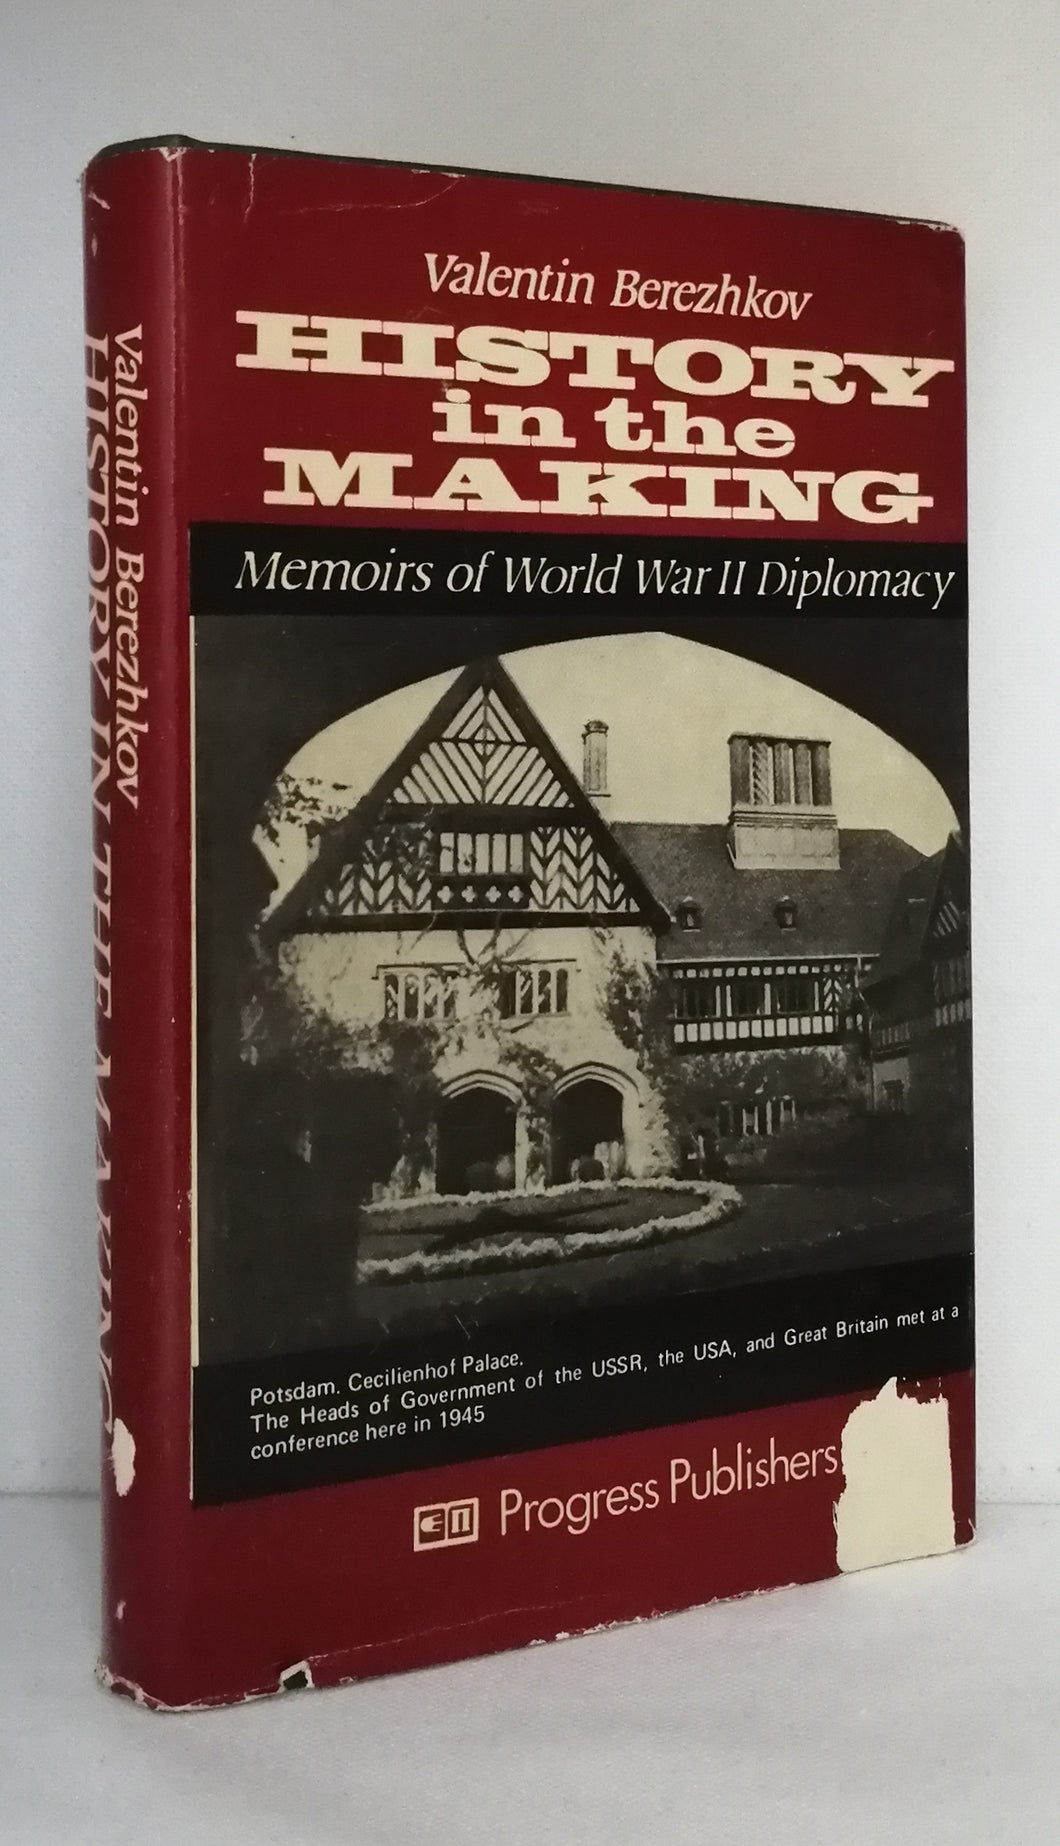 History in the Making: Memoires of World War II Diplomacy by Valentin Berezhkov [English translation]